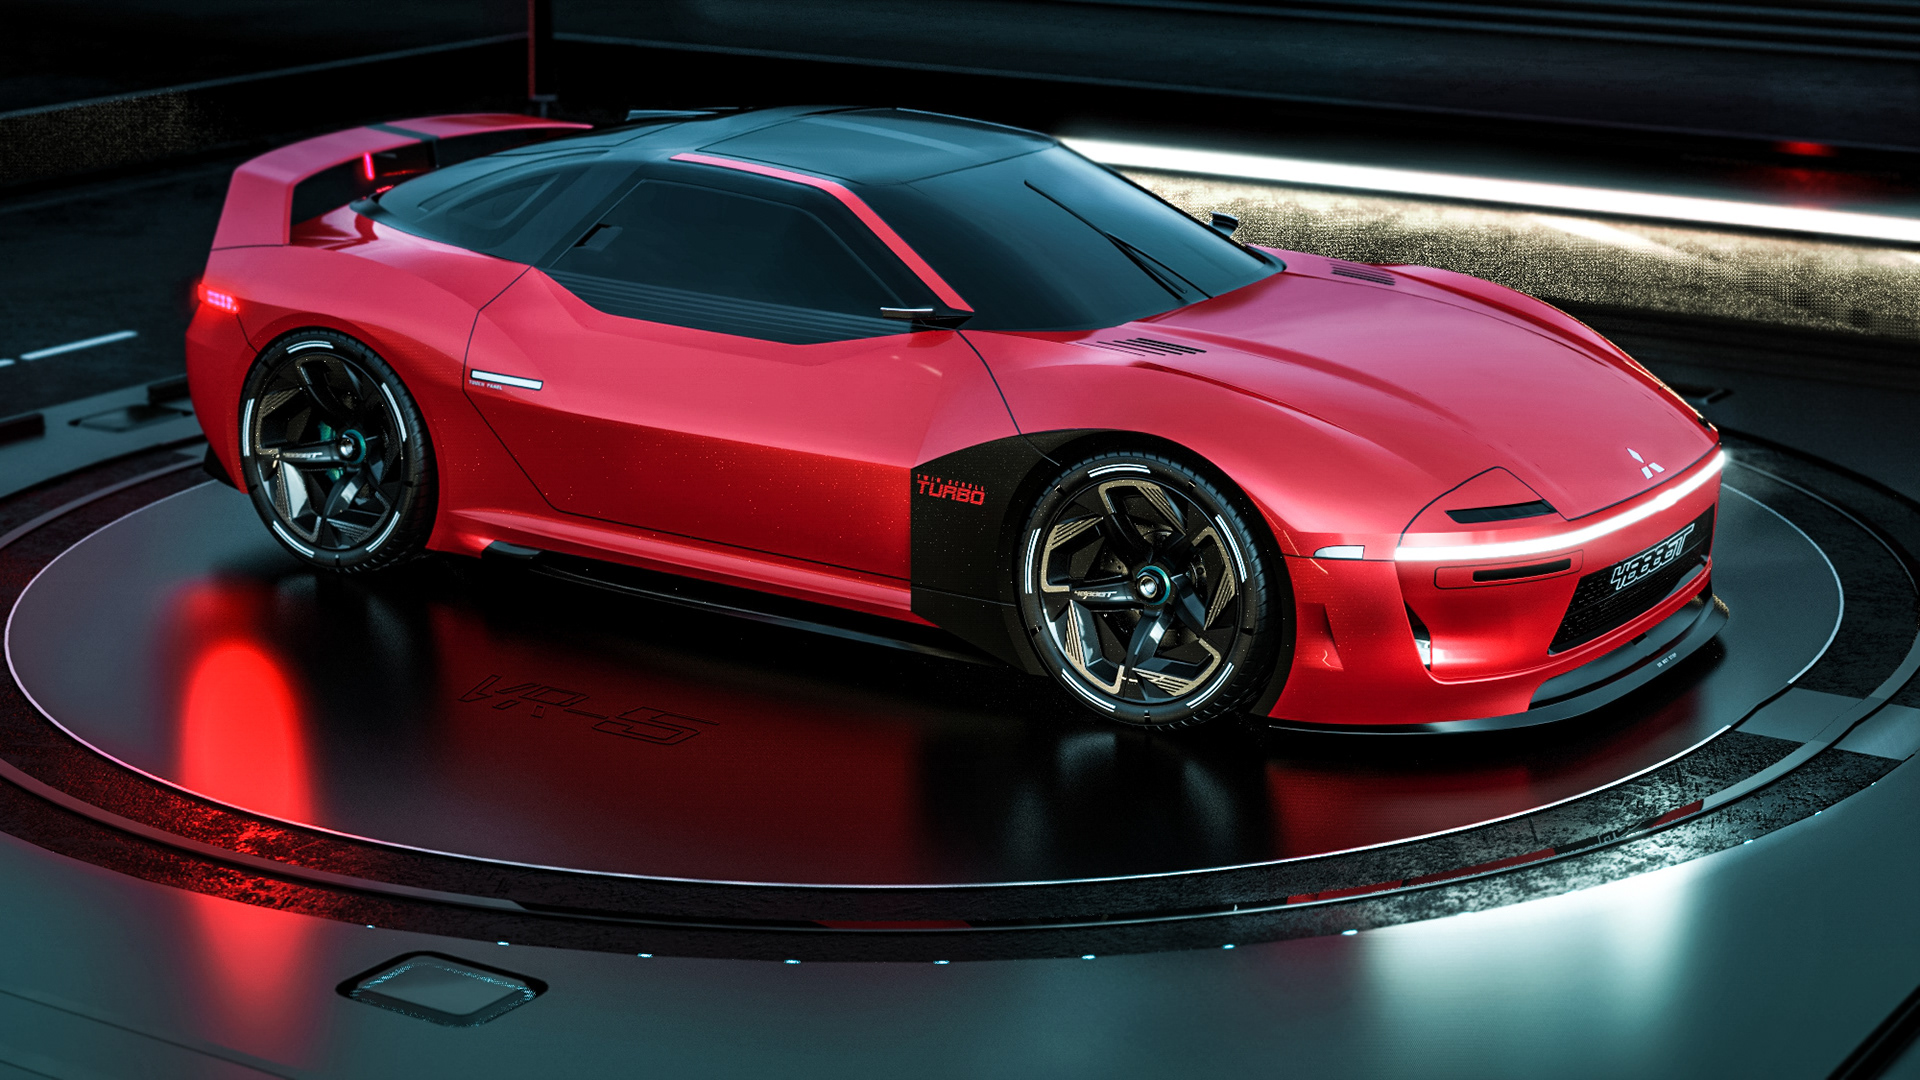 2020 Mitsubishi 3000Gt Release Date and Concept